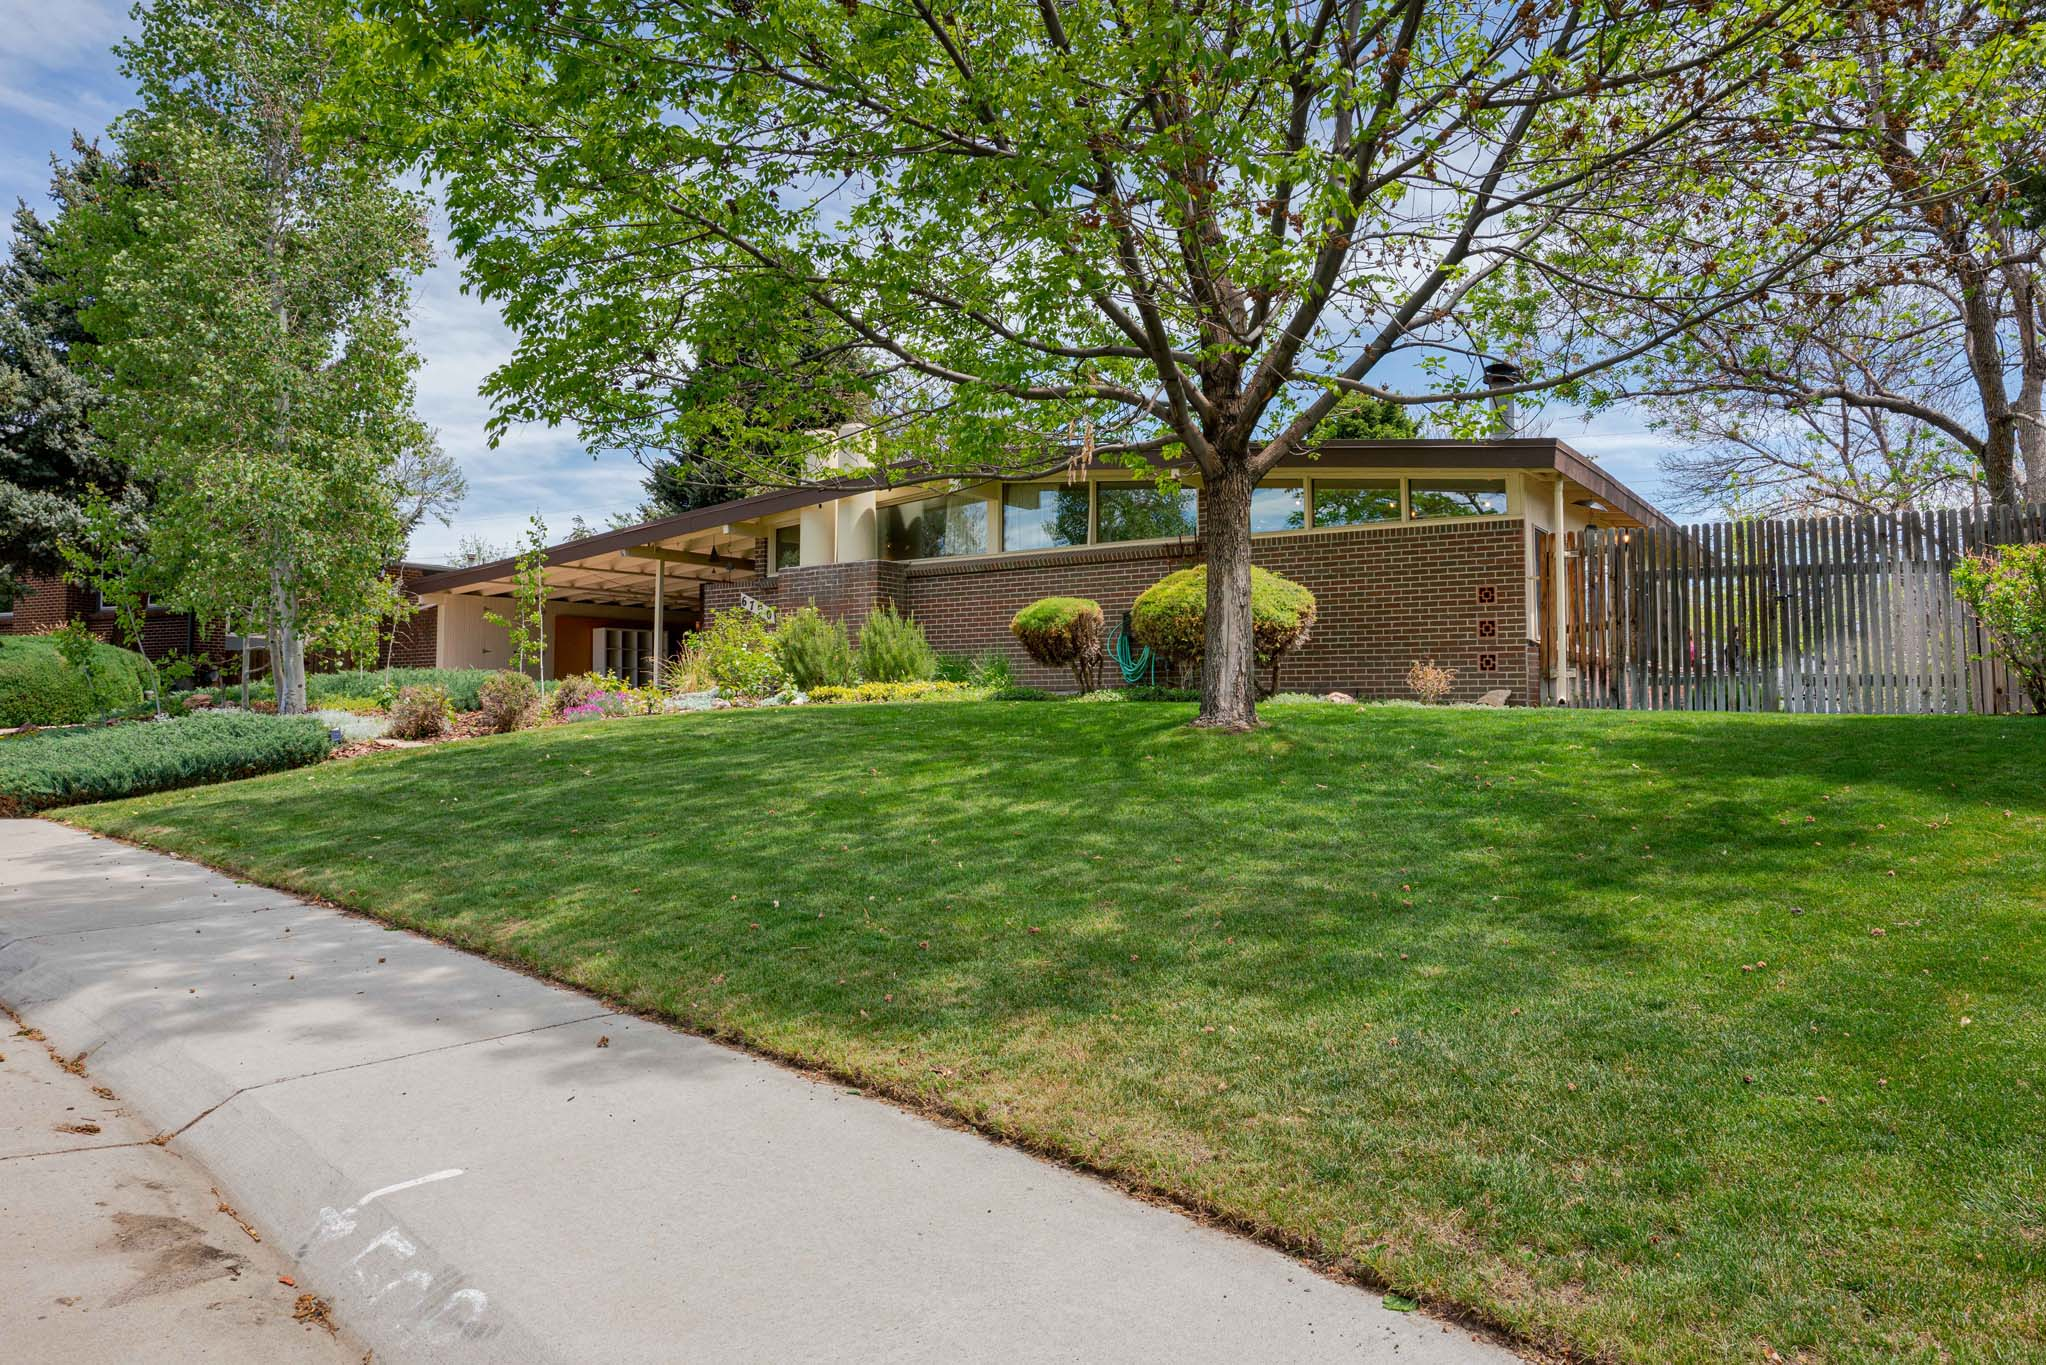 6790 S. Sherman Street, Centennial, CO 80122